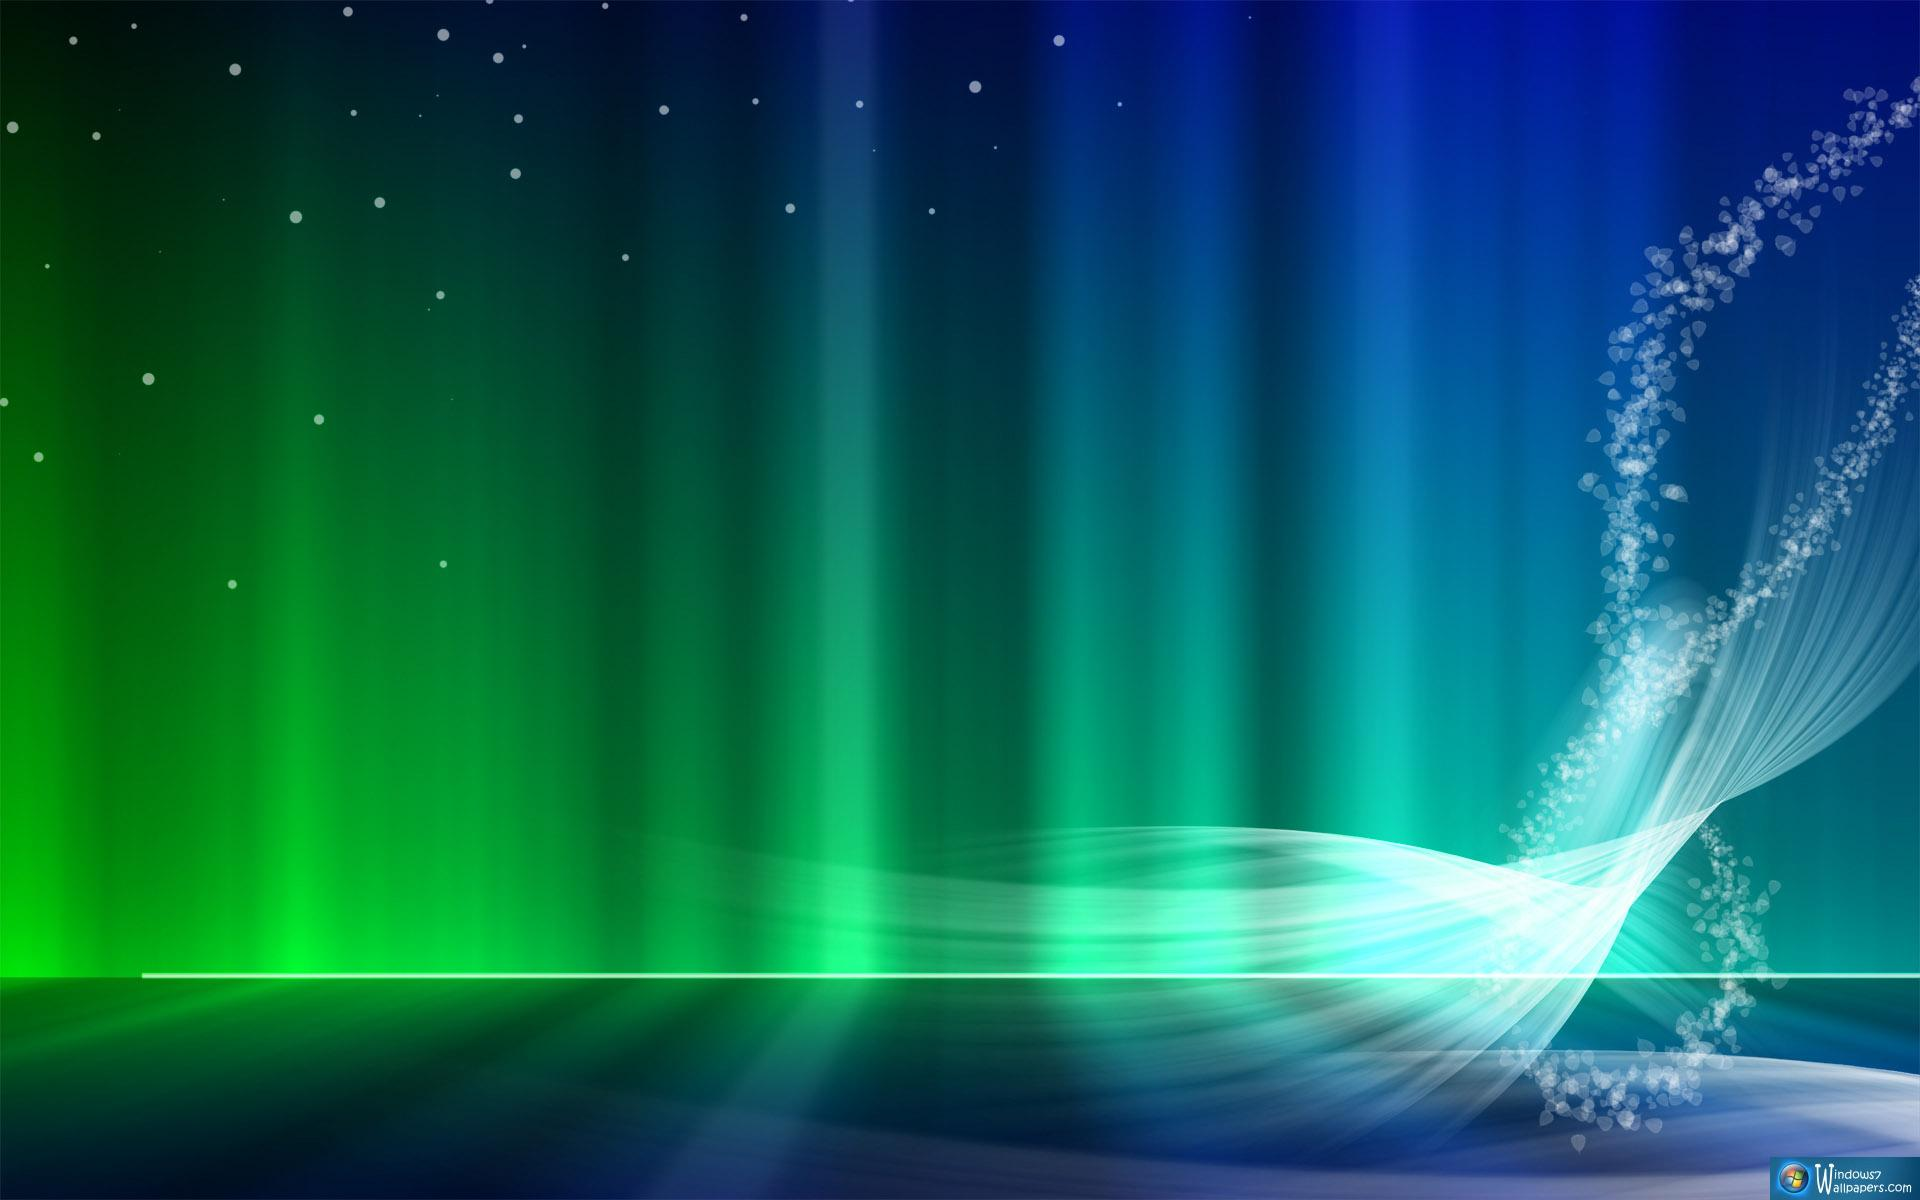 Top 10 Windows 7 Wallpapers 1920x1200